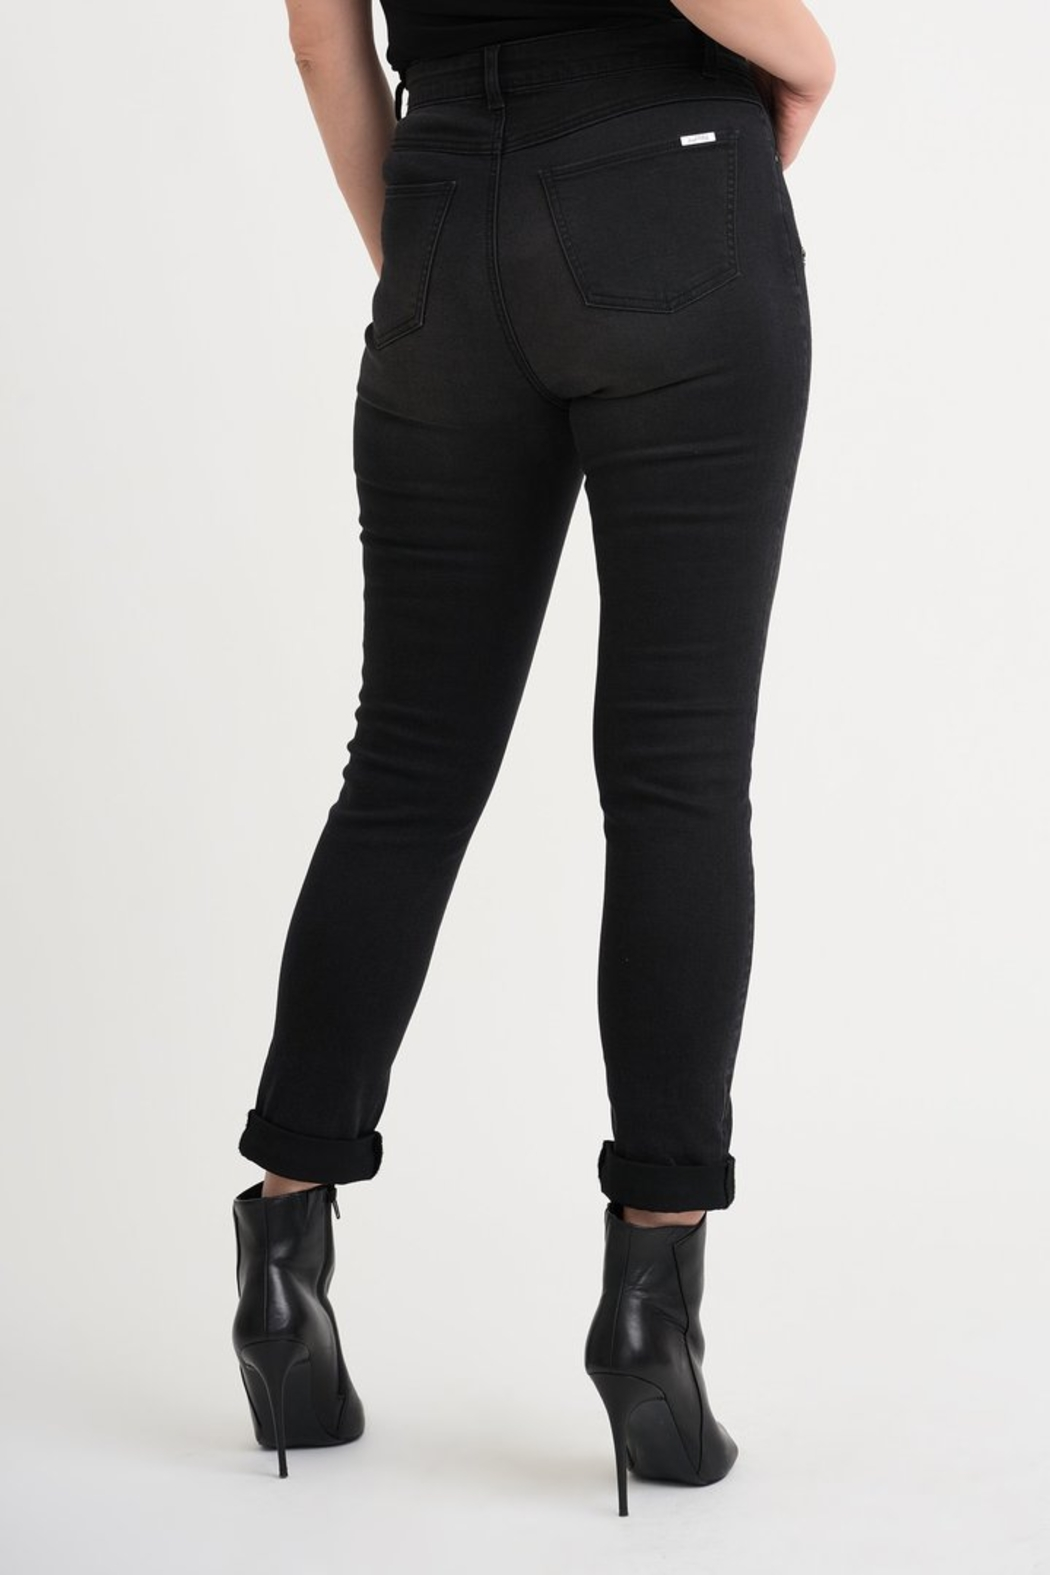 Joseph Ribkoff  Five pocket charcoal/dark grey jean with studded patch detail. - Front Full Image